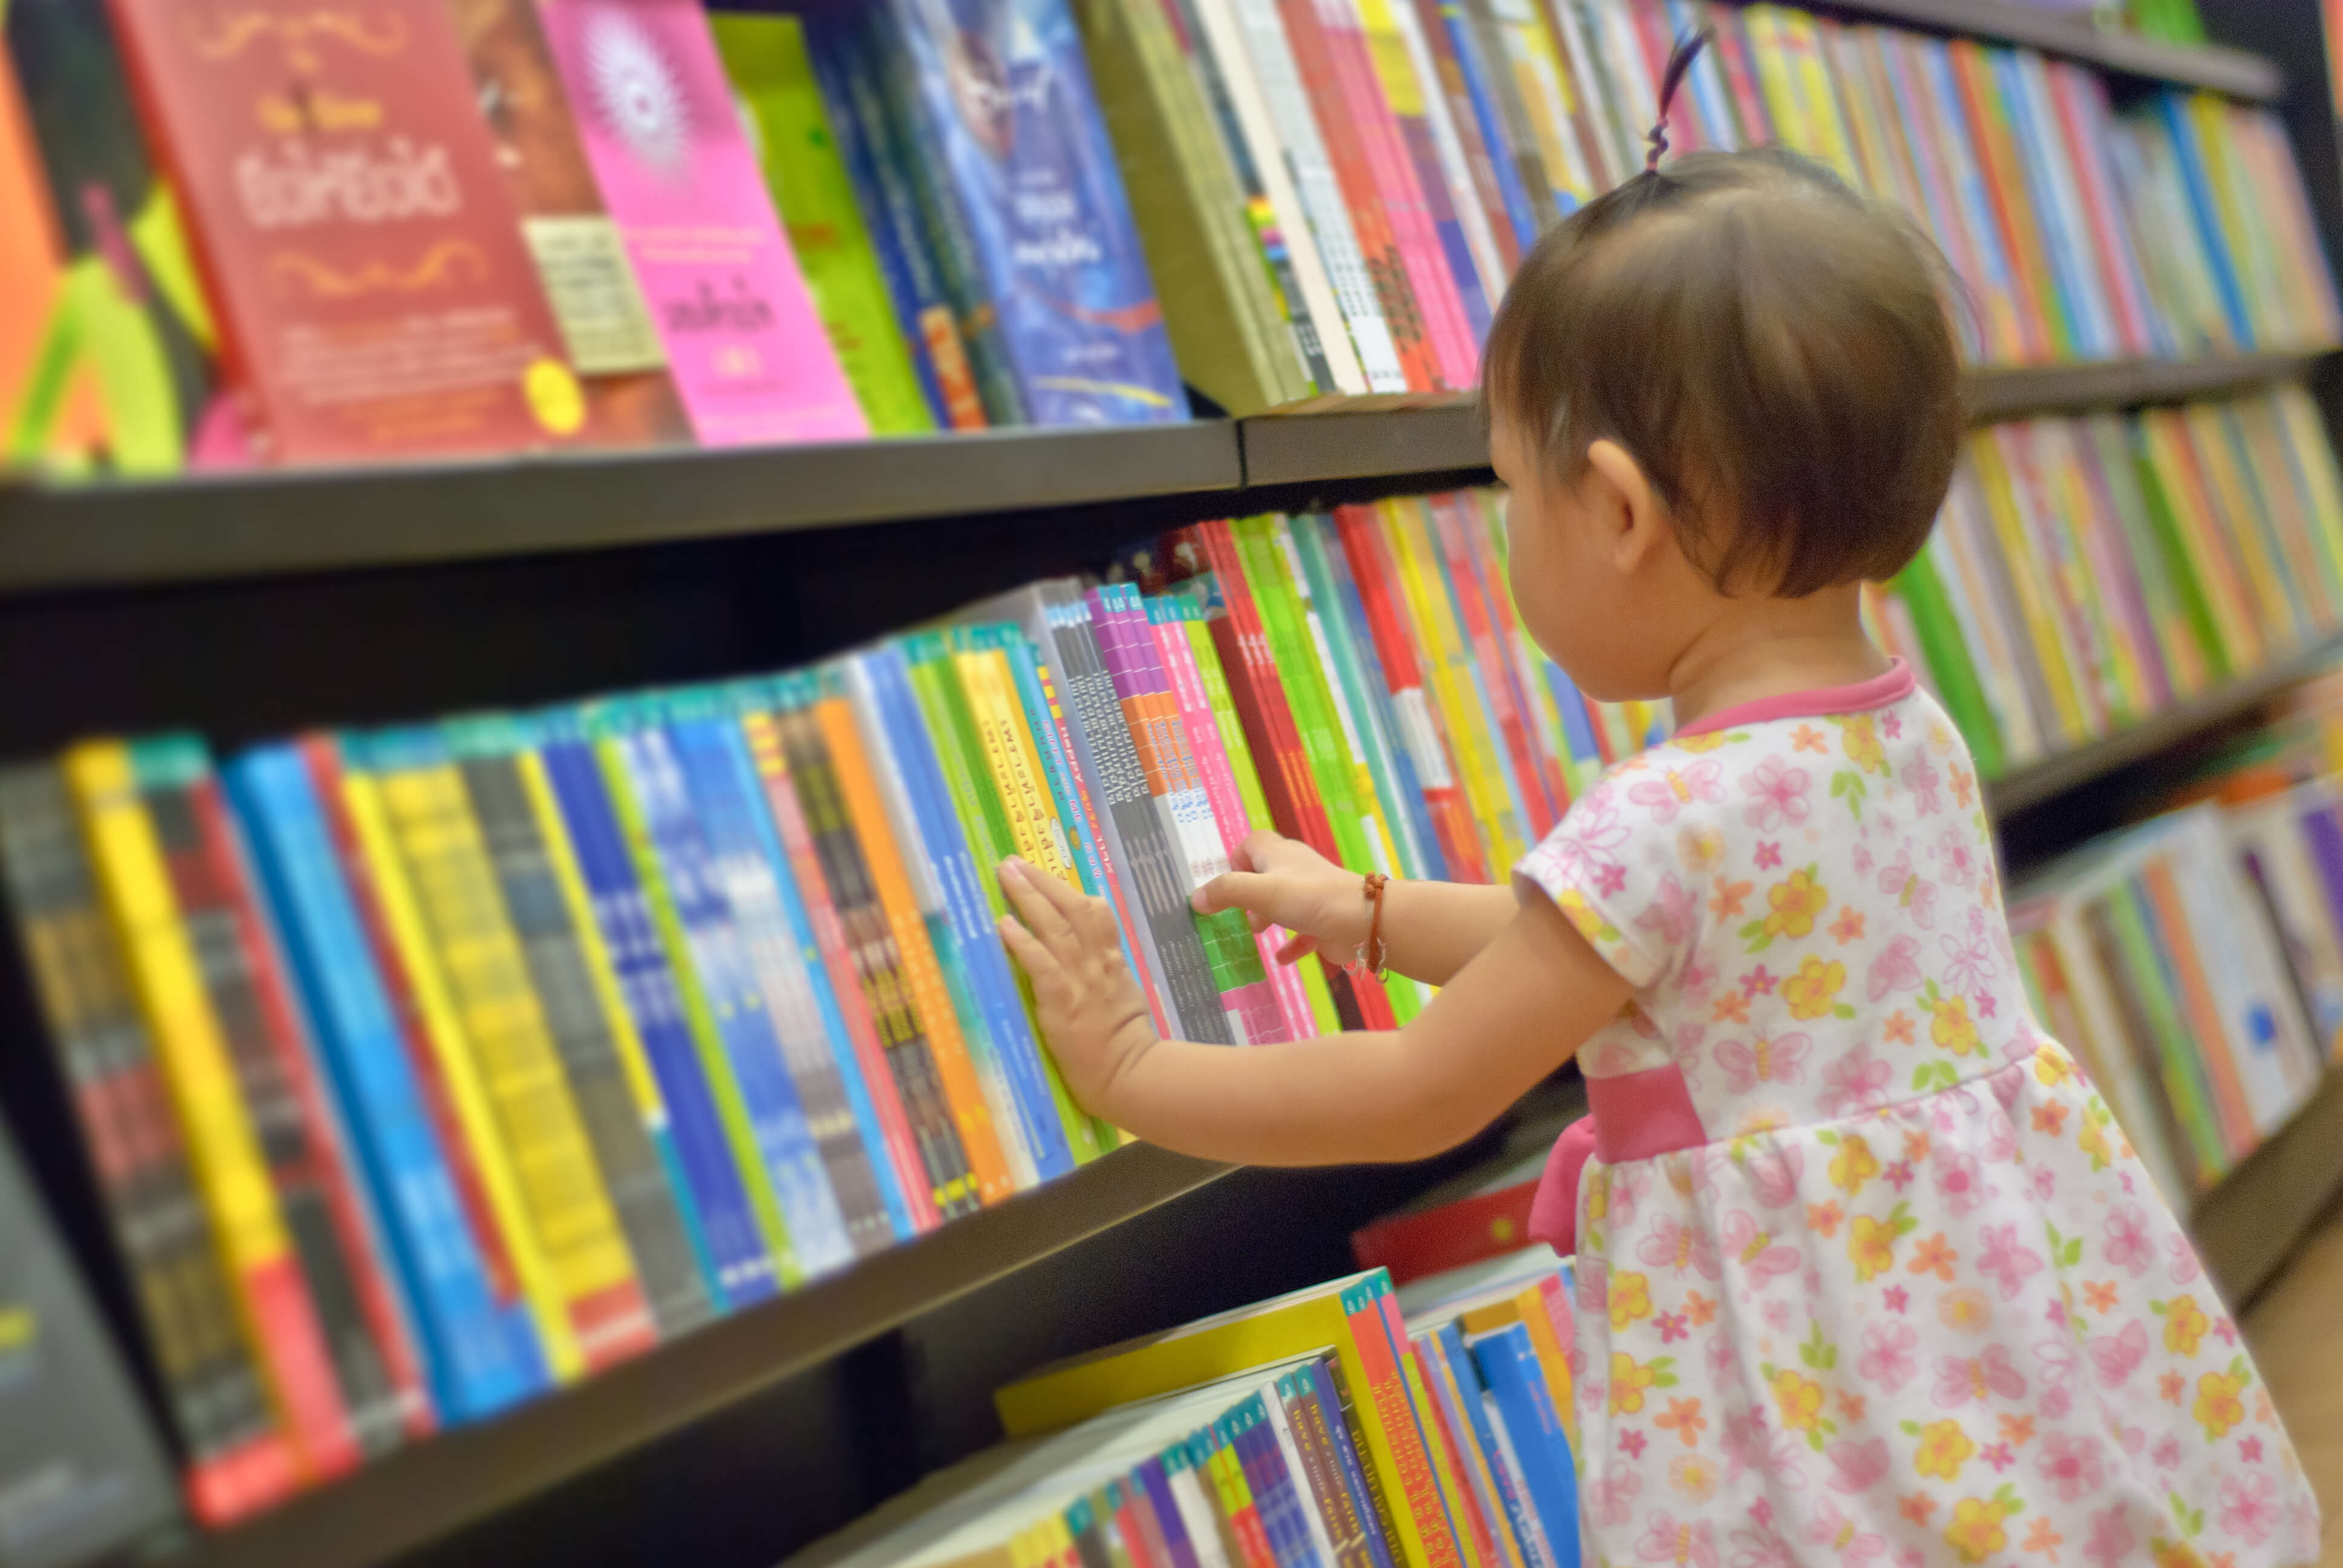 Asian Little girl is choosing a book in the library. A child is looking at the books in the library deciding which one to take home. Children creativity and imagination.